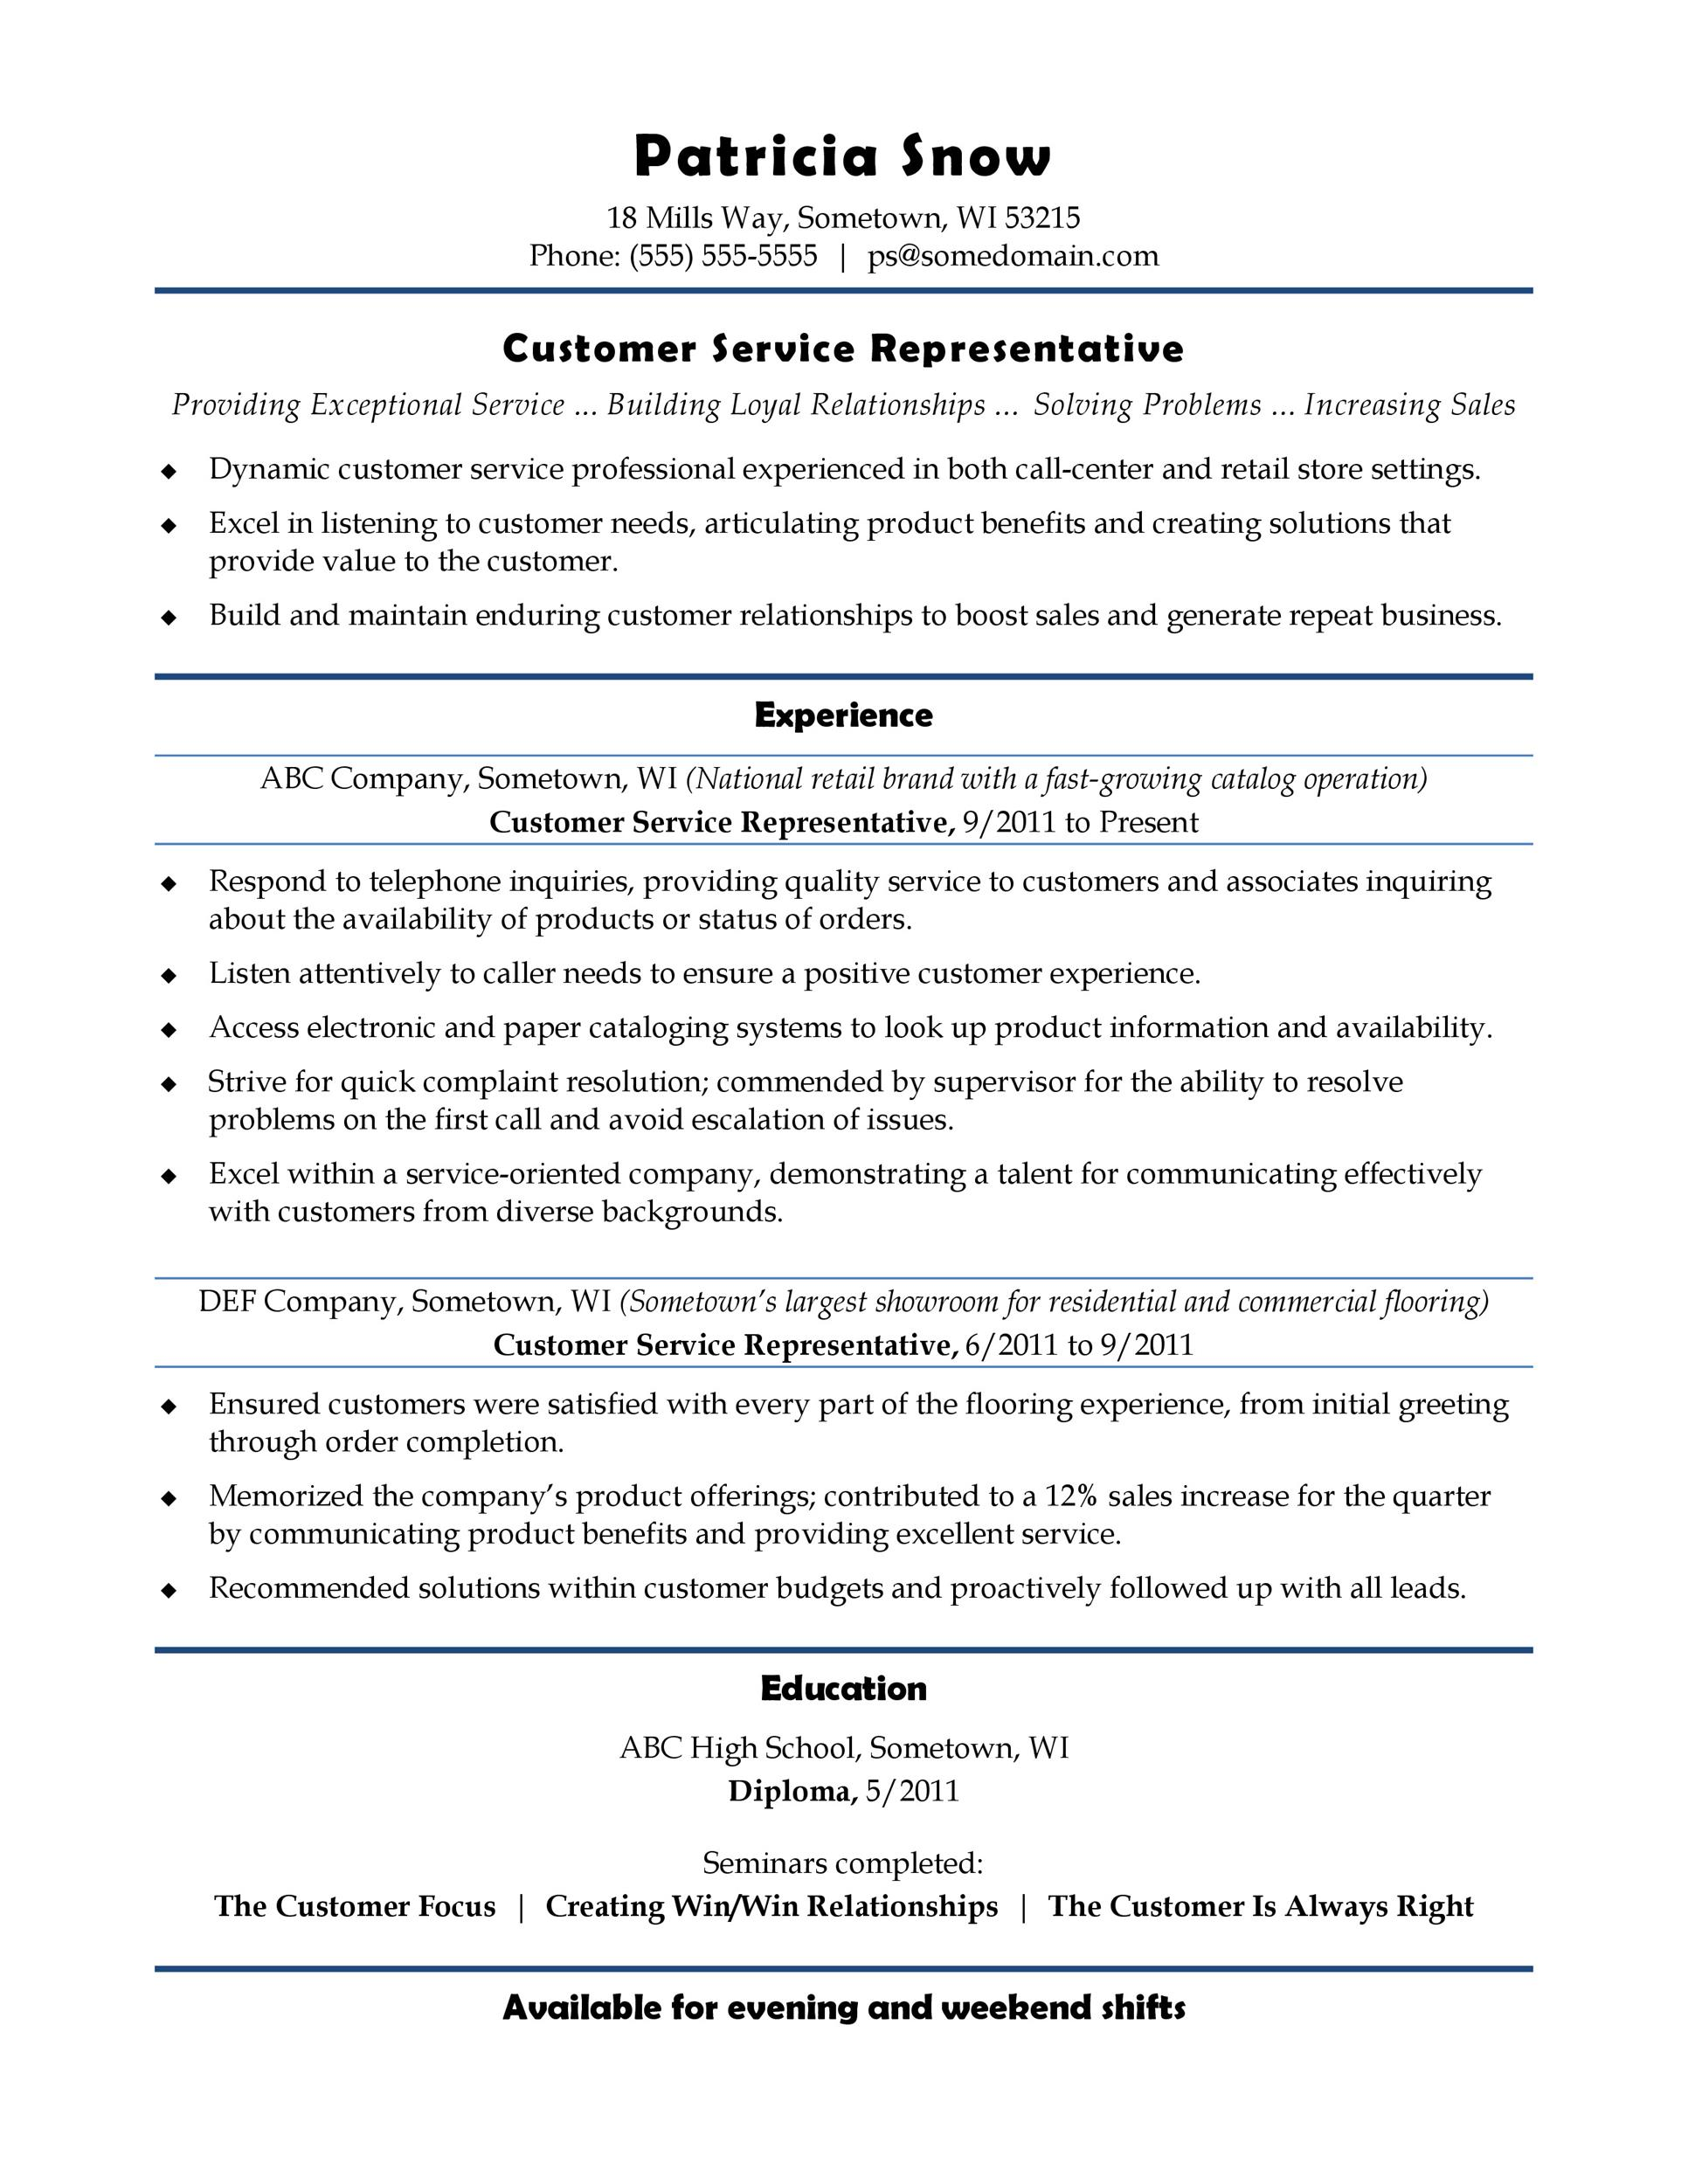 Template Customer Service Resume Sample Australia Representative Skills  Professional Bank Objective .  Resume Customer Service Representative